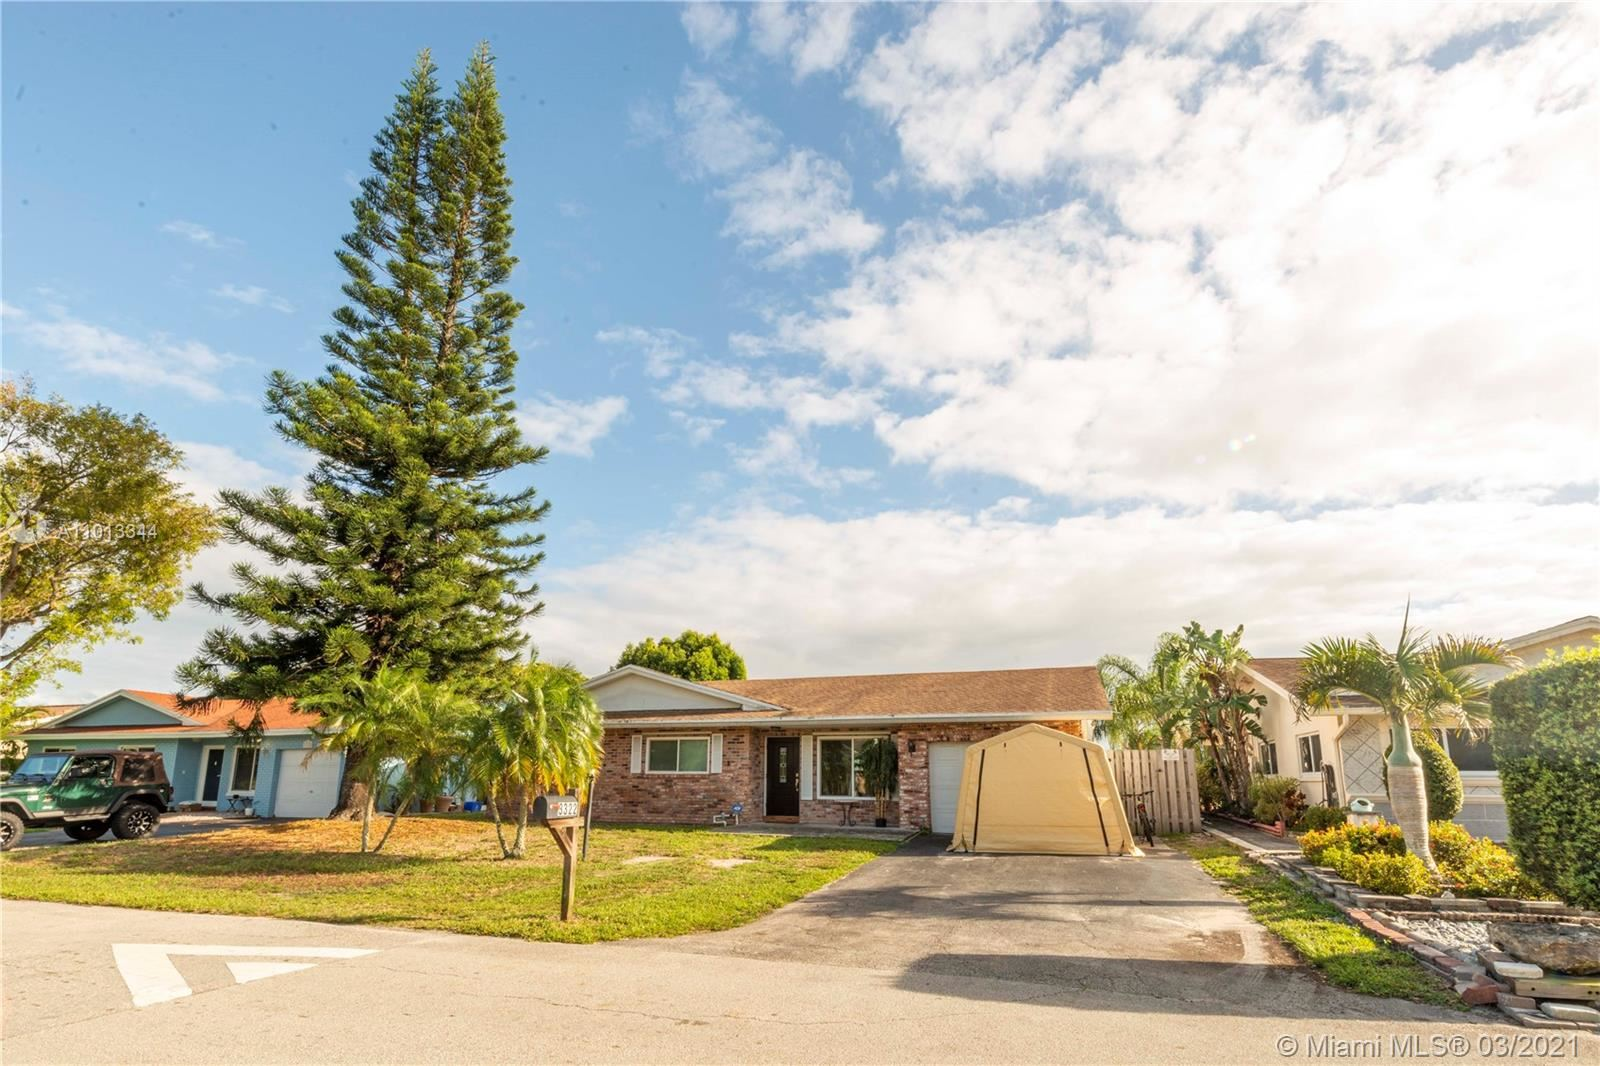 3322 NW 69th Ct, Fort Lauderdale, FL 33309 - #: A11013344